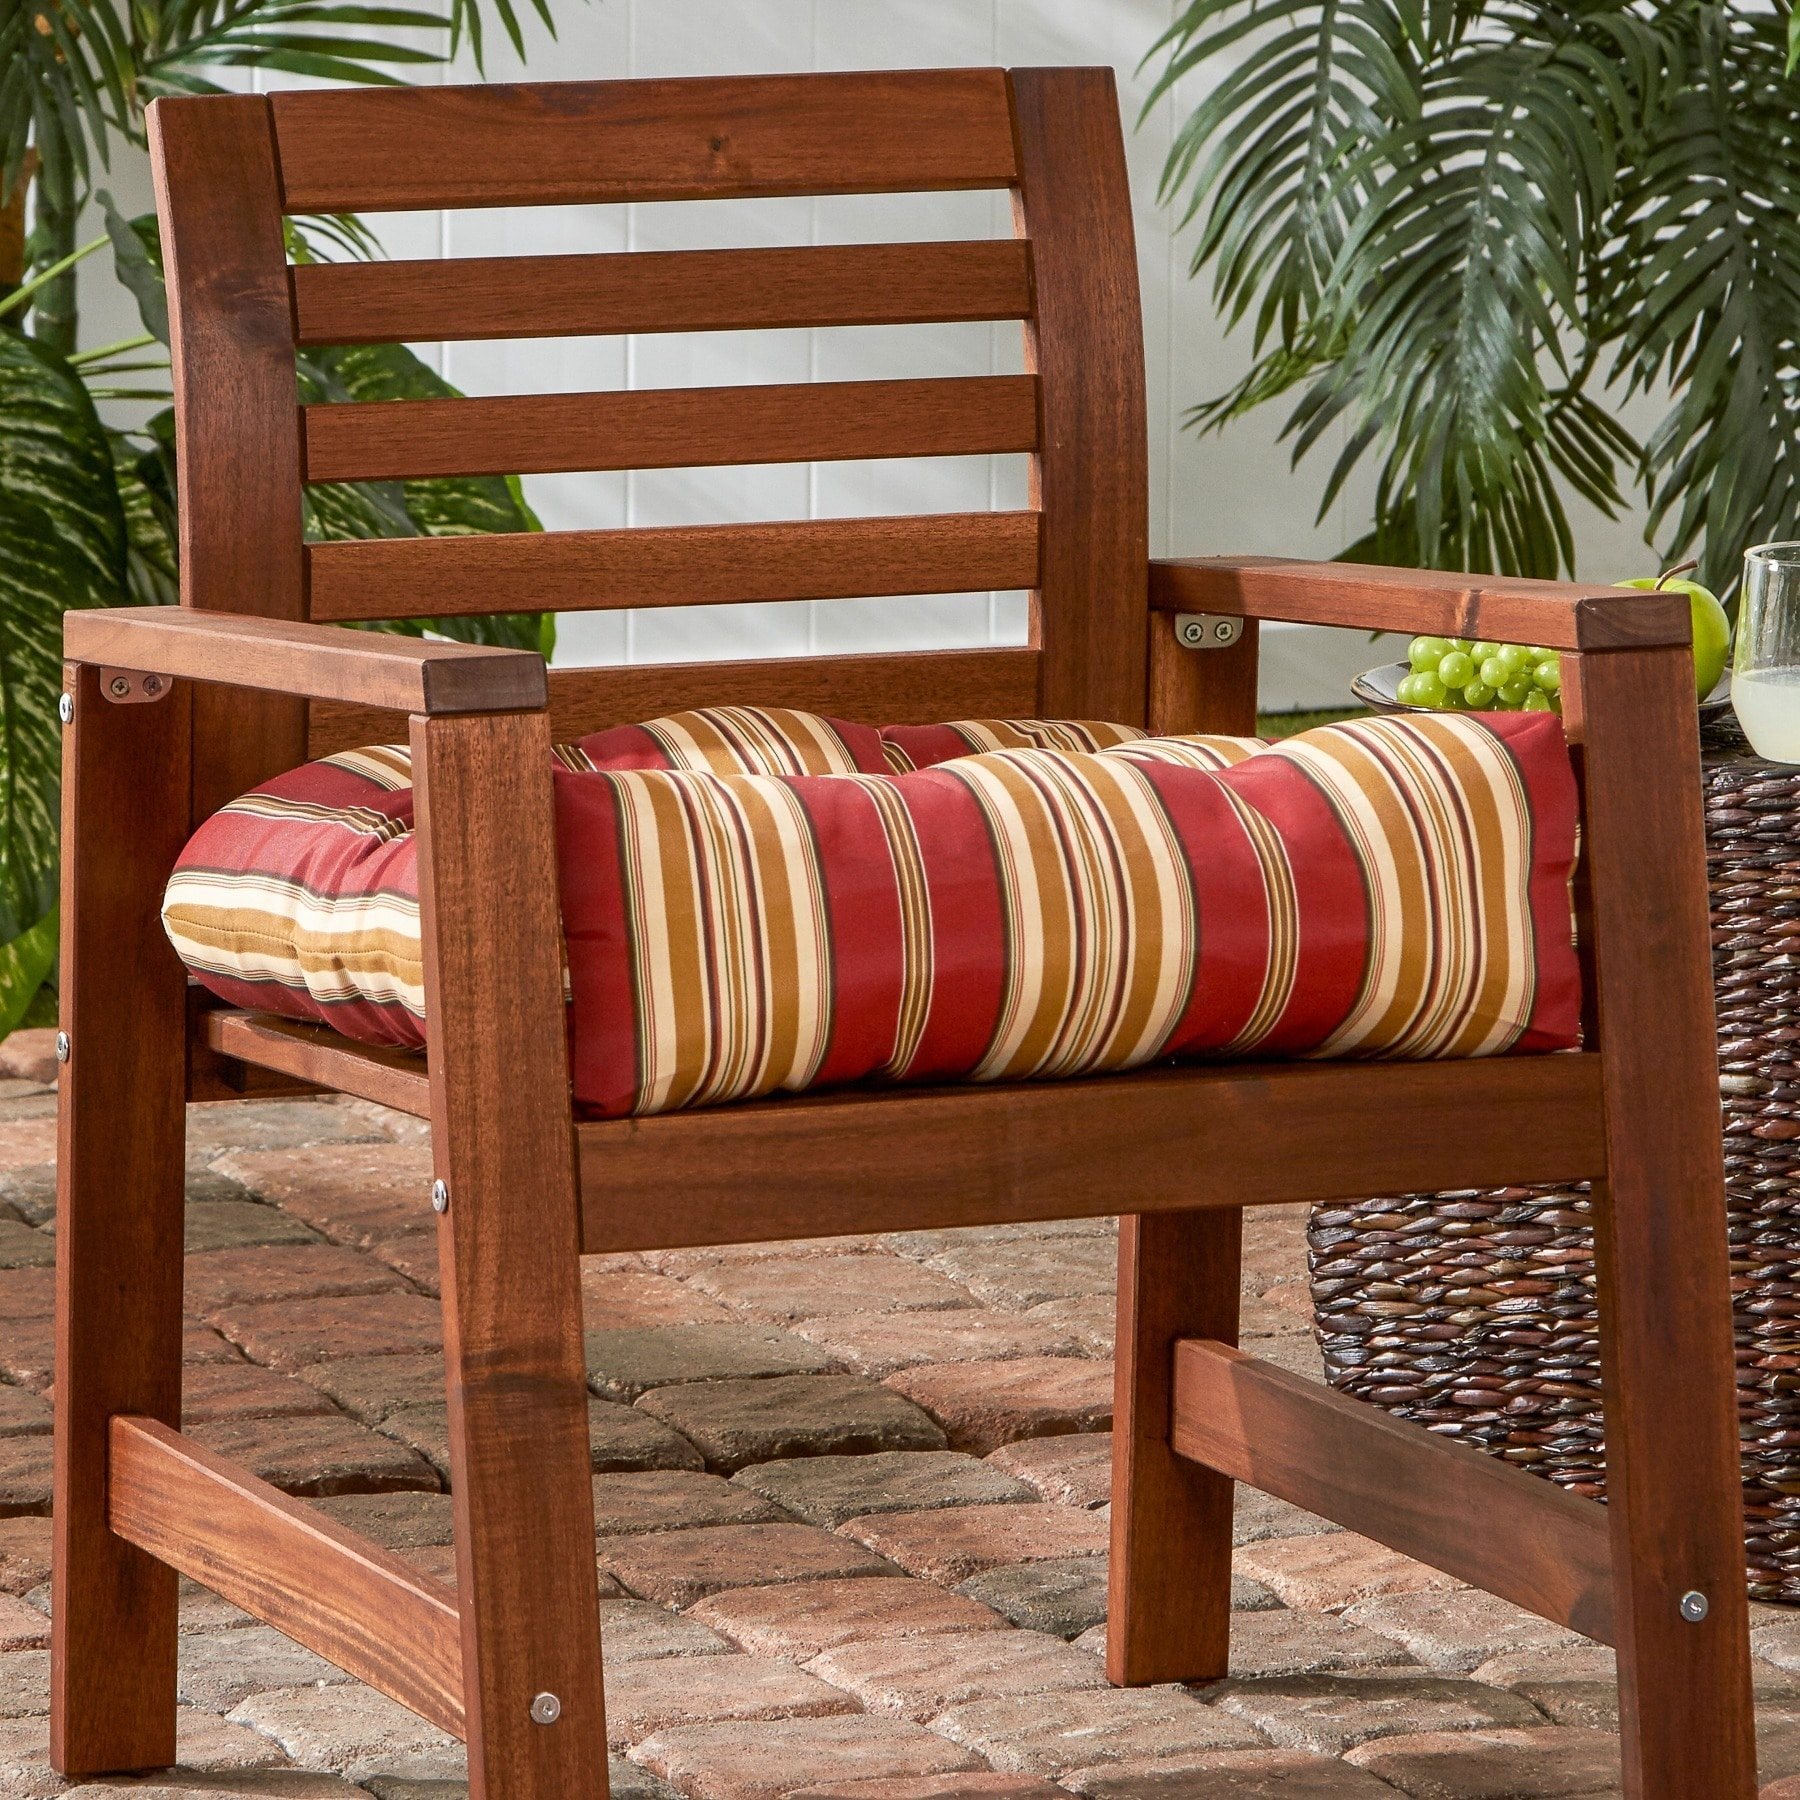 Shop Greendale Home Fashions Roma Stripe 20 Inch Outdoor Chair